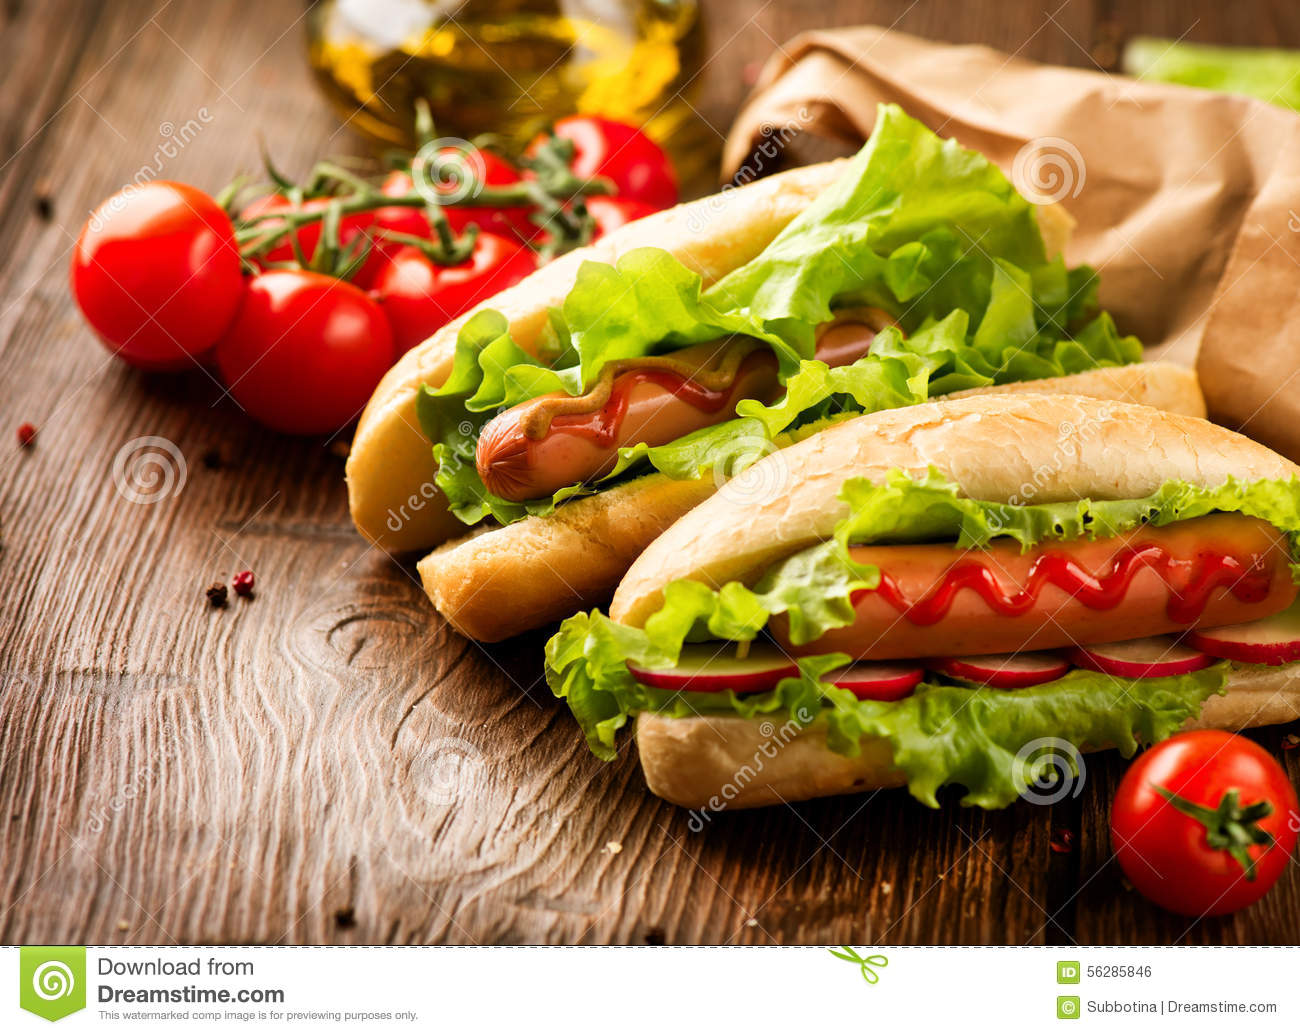 Hot Dogs With Sesame Seeds